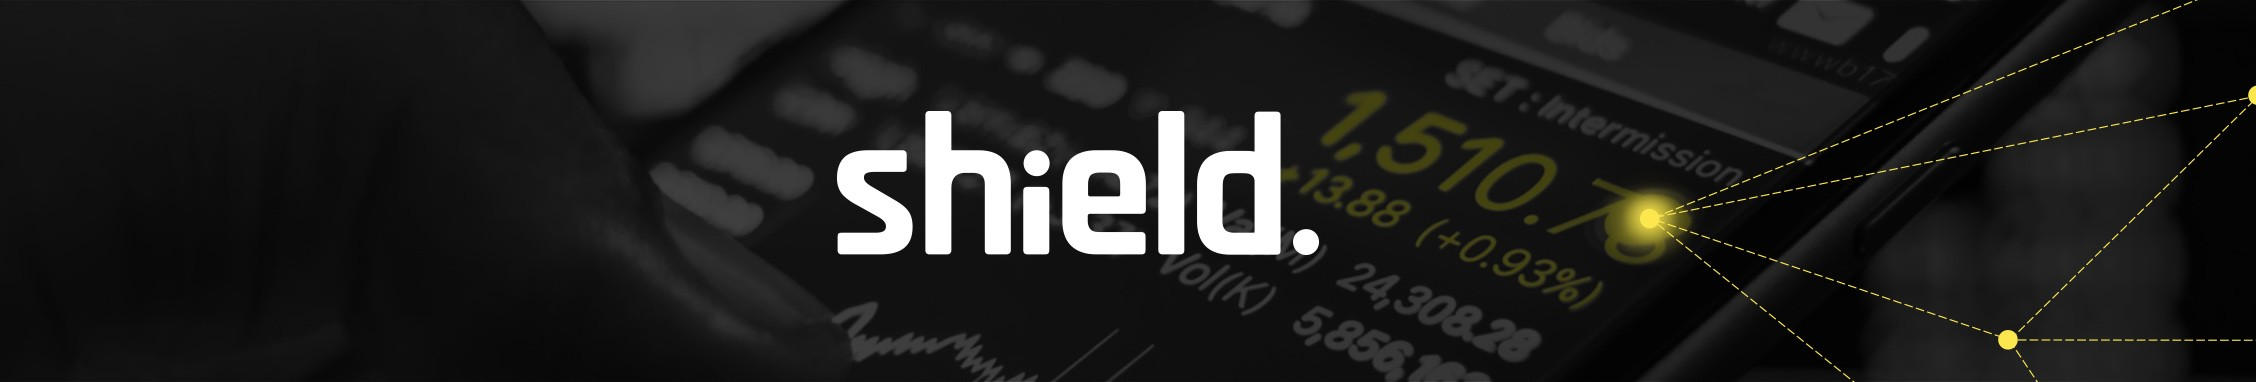 Shield Joins IBM Cloud for Financial Services Ecosystem